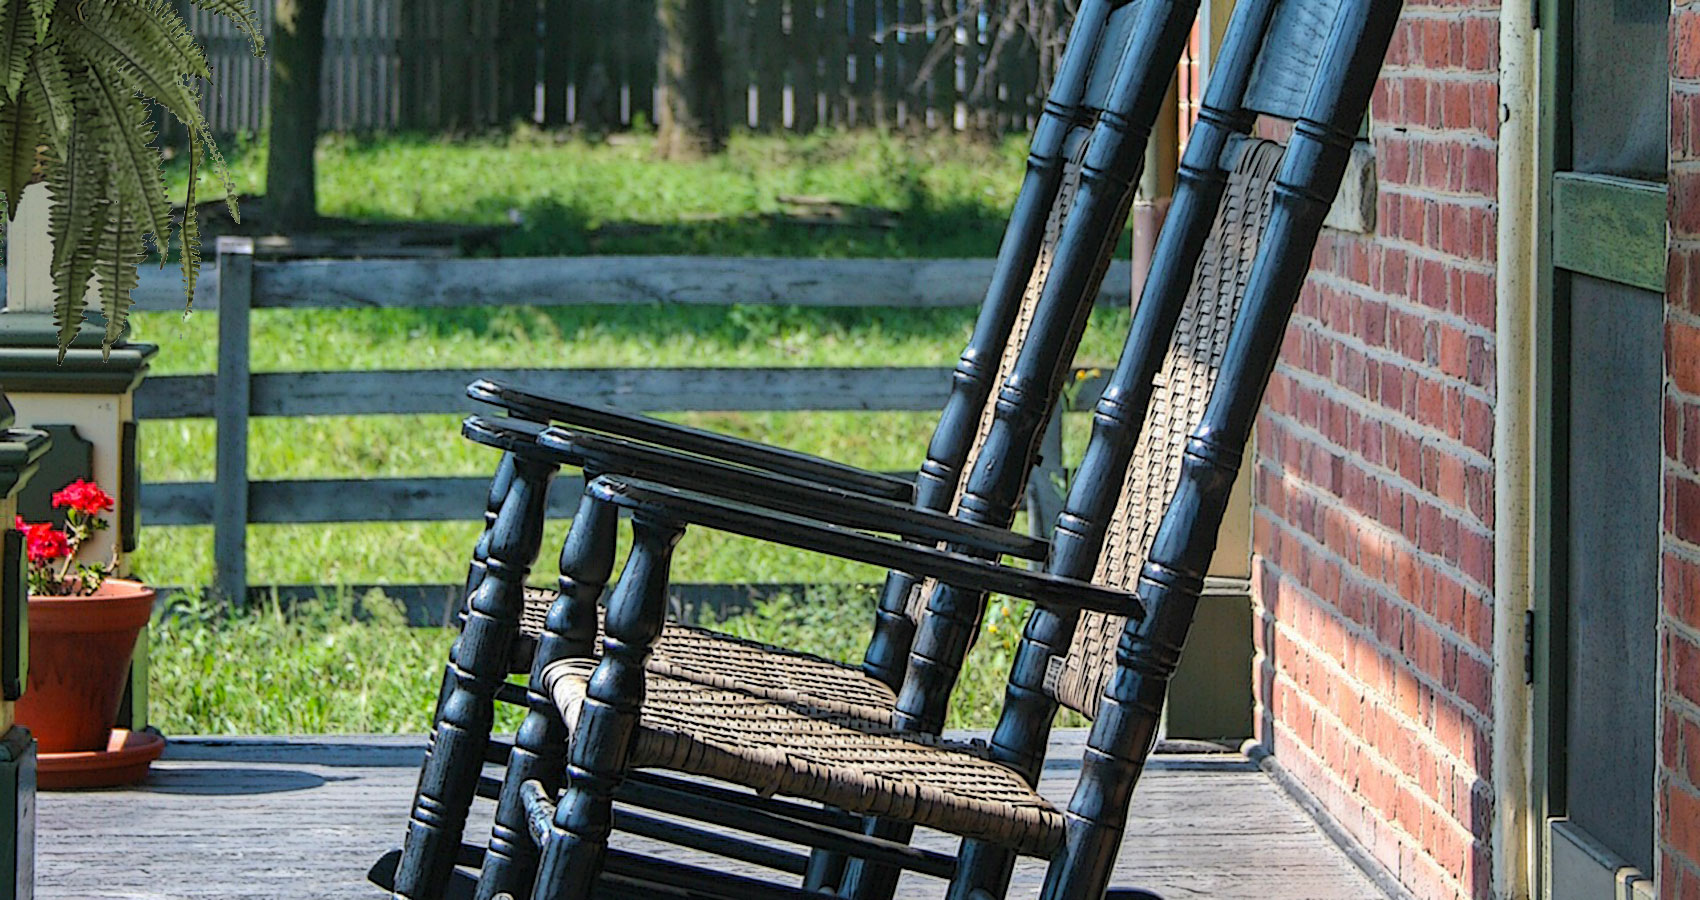 Rocking Chairs written by Vickie Mryczko at Spillwords.com